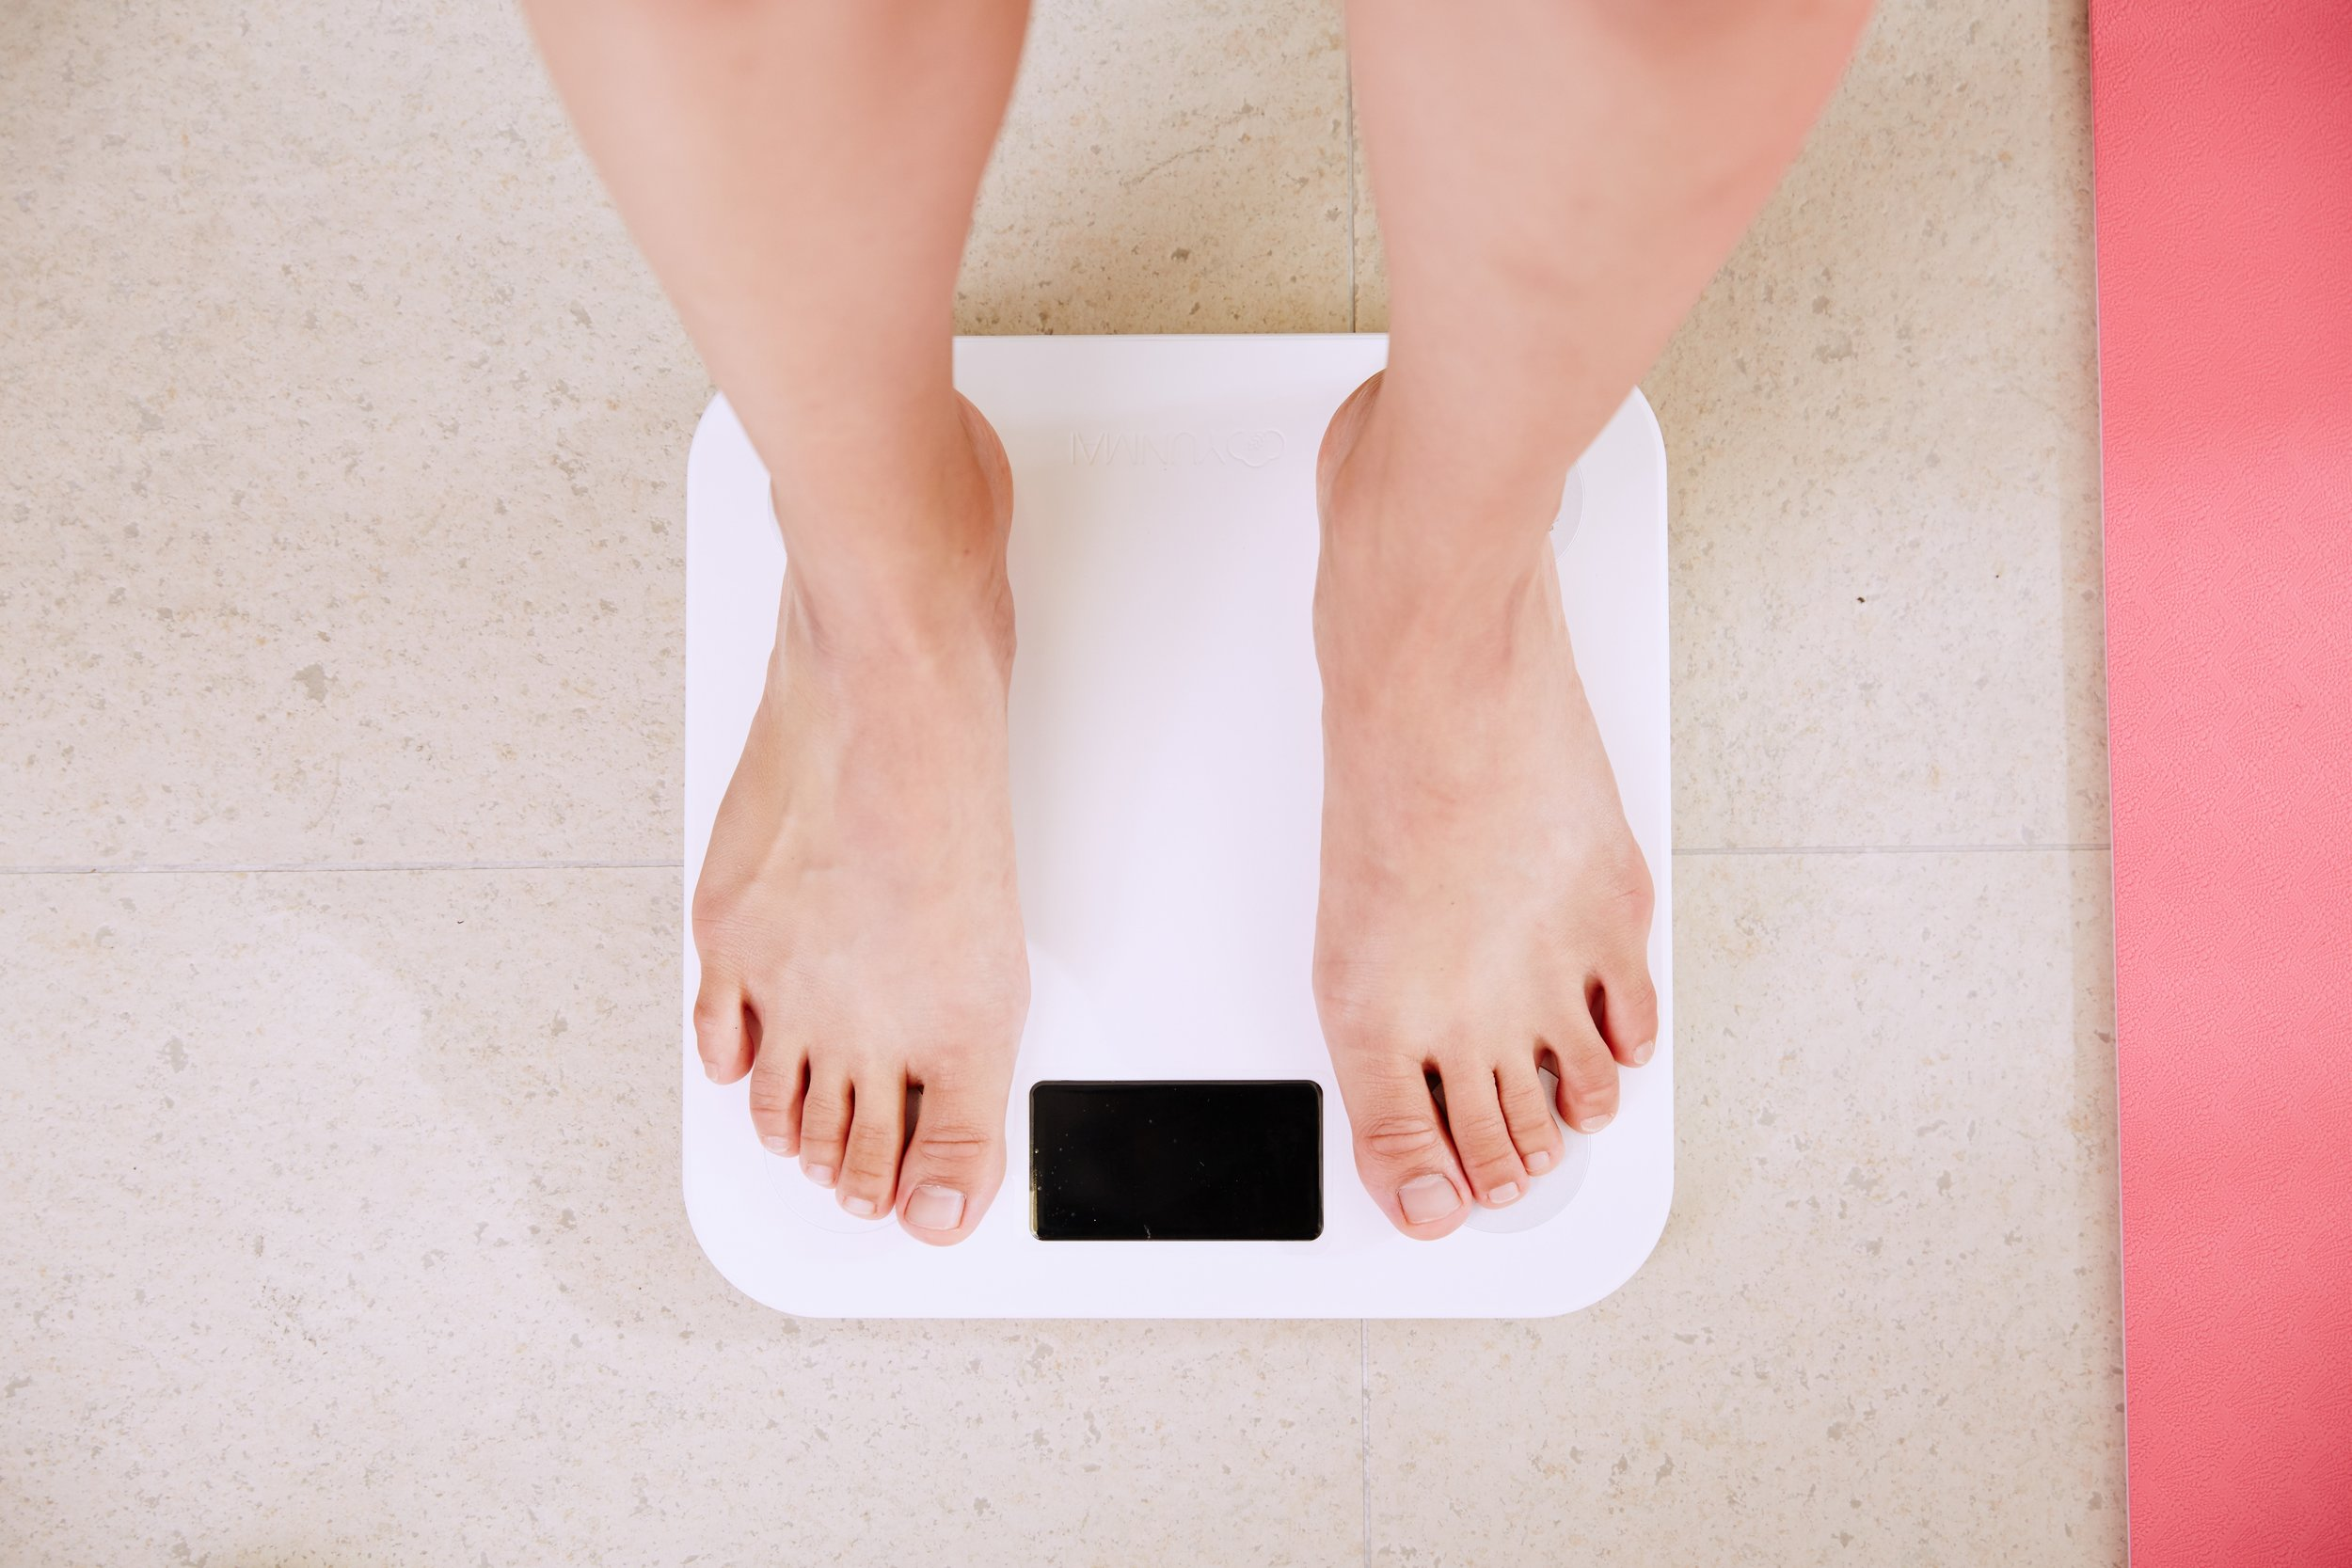 Stop obsessing about your weight and fix your metabolism with Dr. Wald's help!